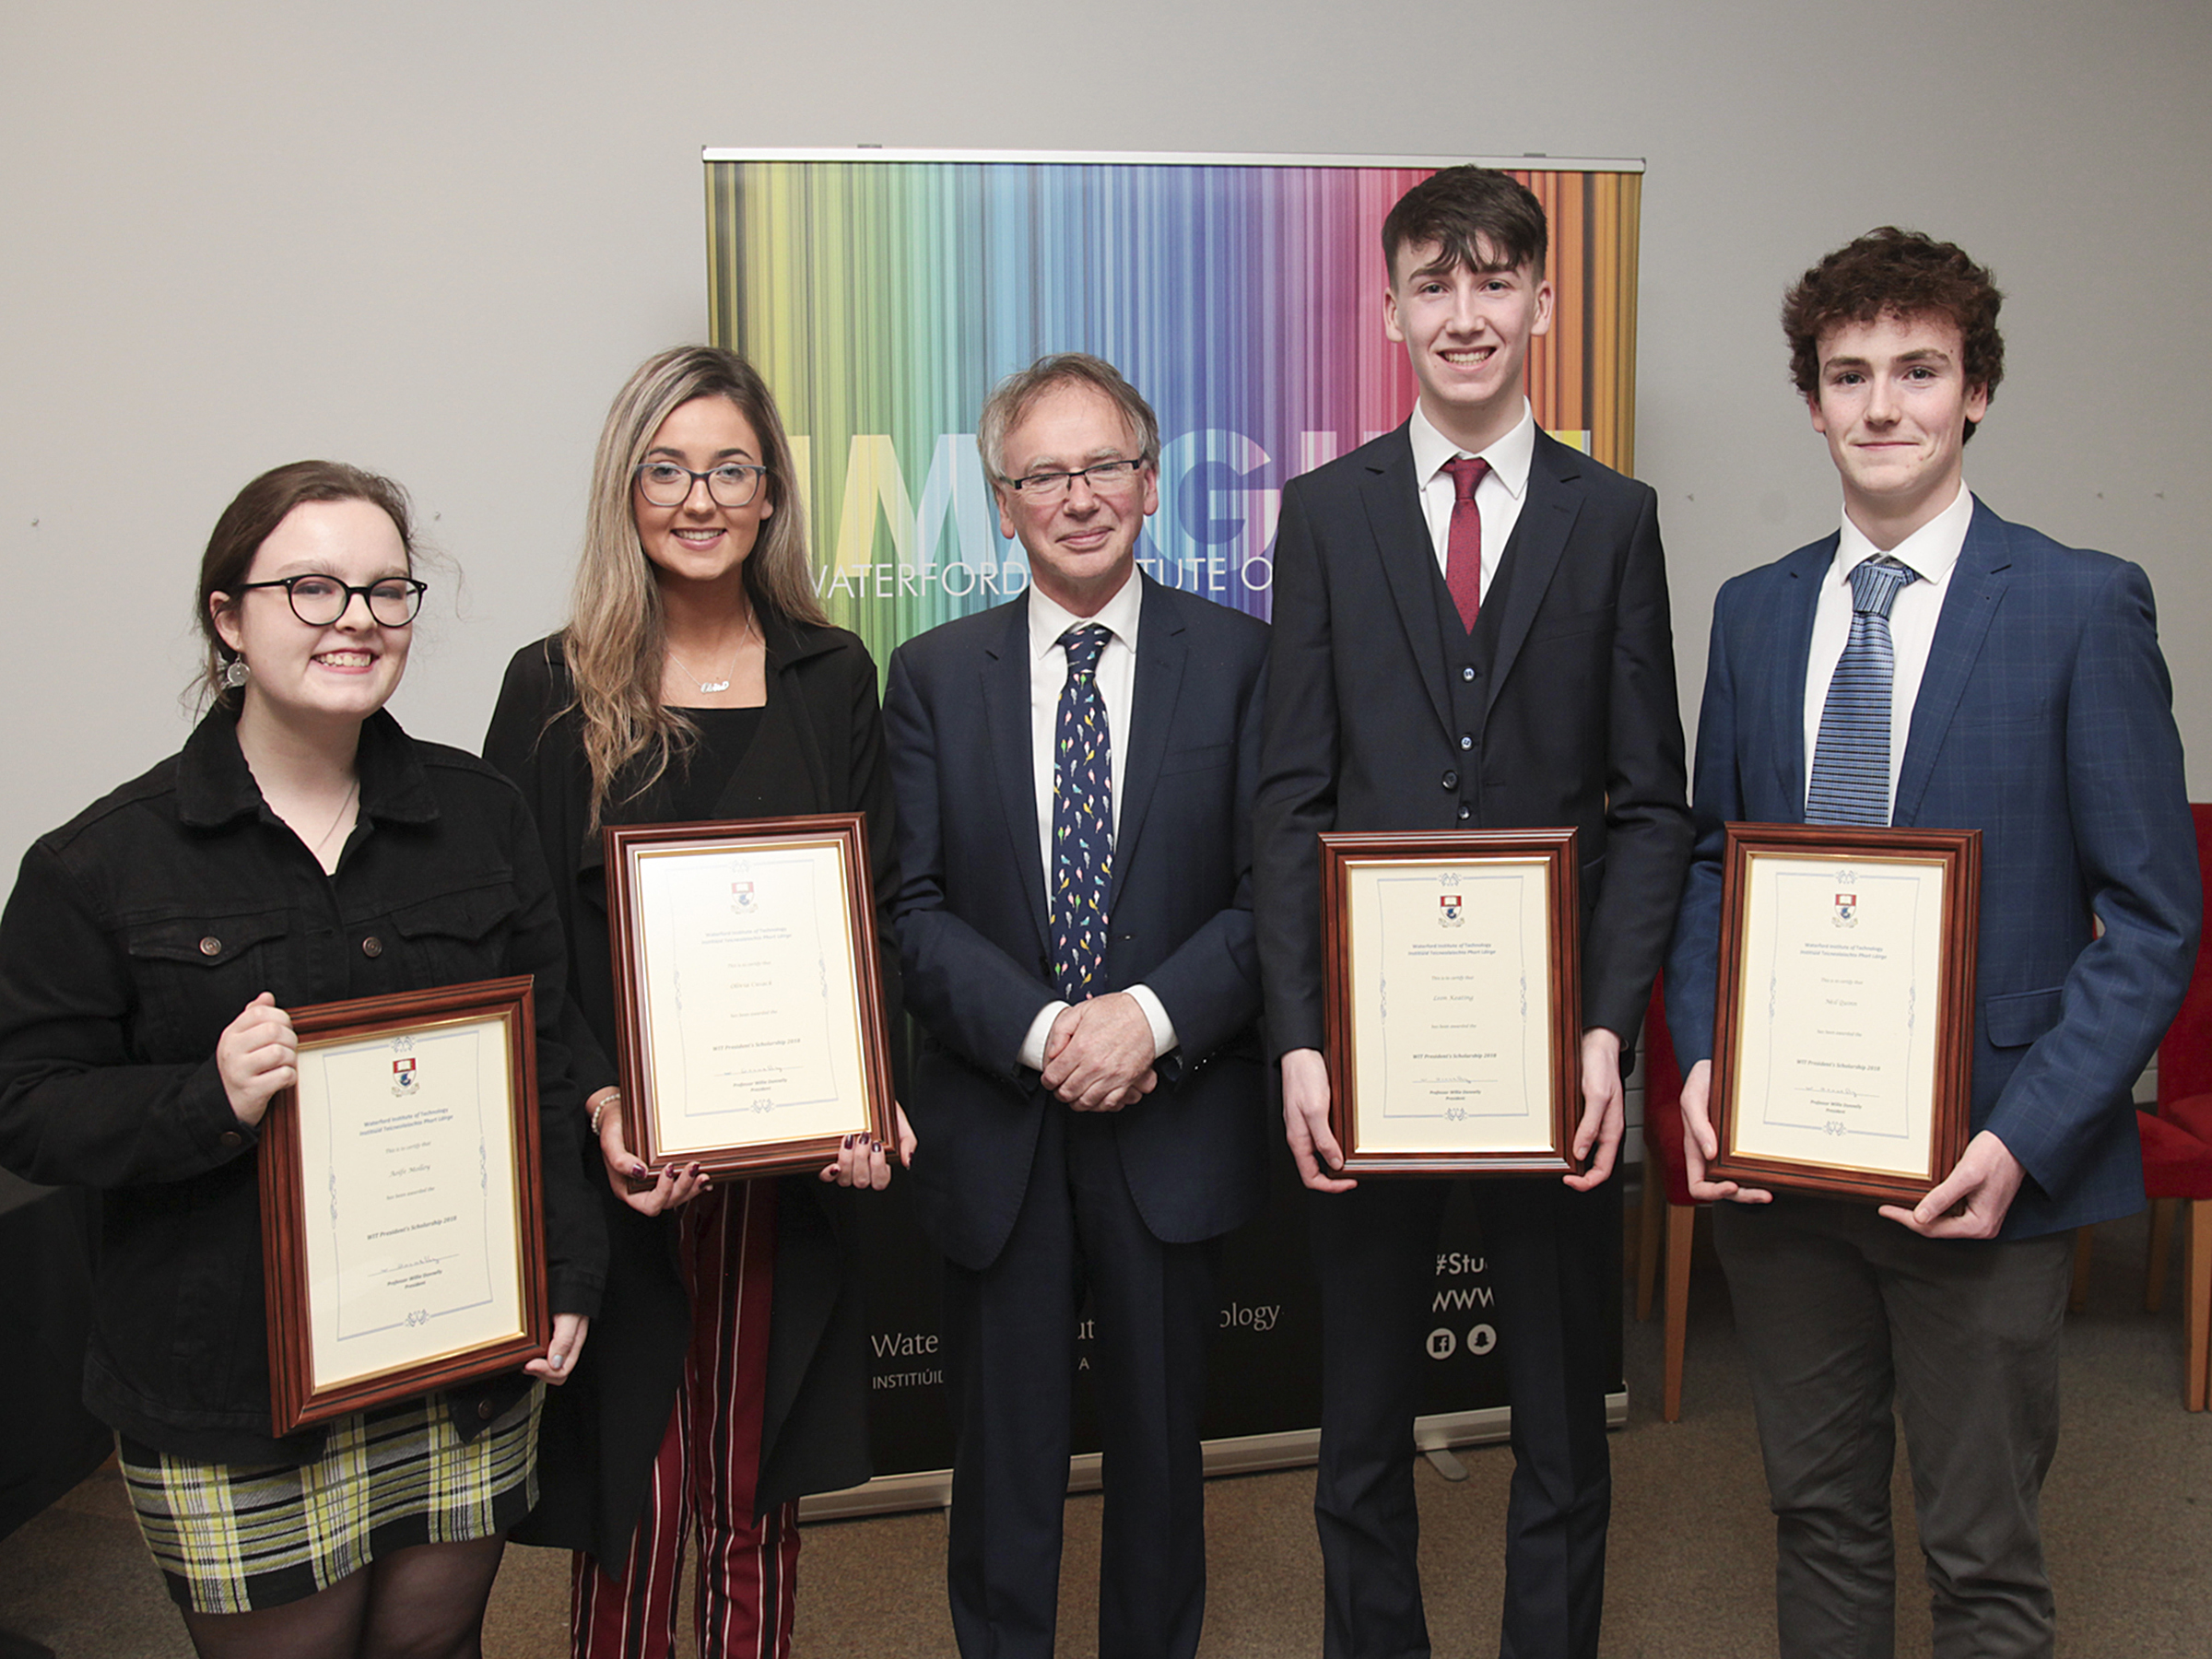 Pictured from left are: Aoife Molloy, Olivia Cusack, Prof Willie Donnelly (President of WIT), Leon Keating, Neil Quinn